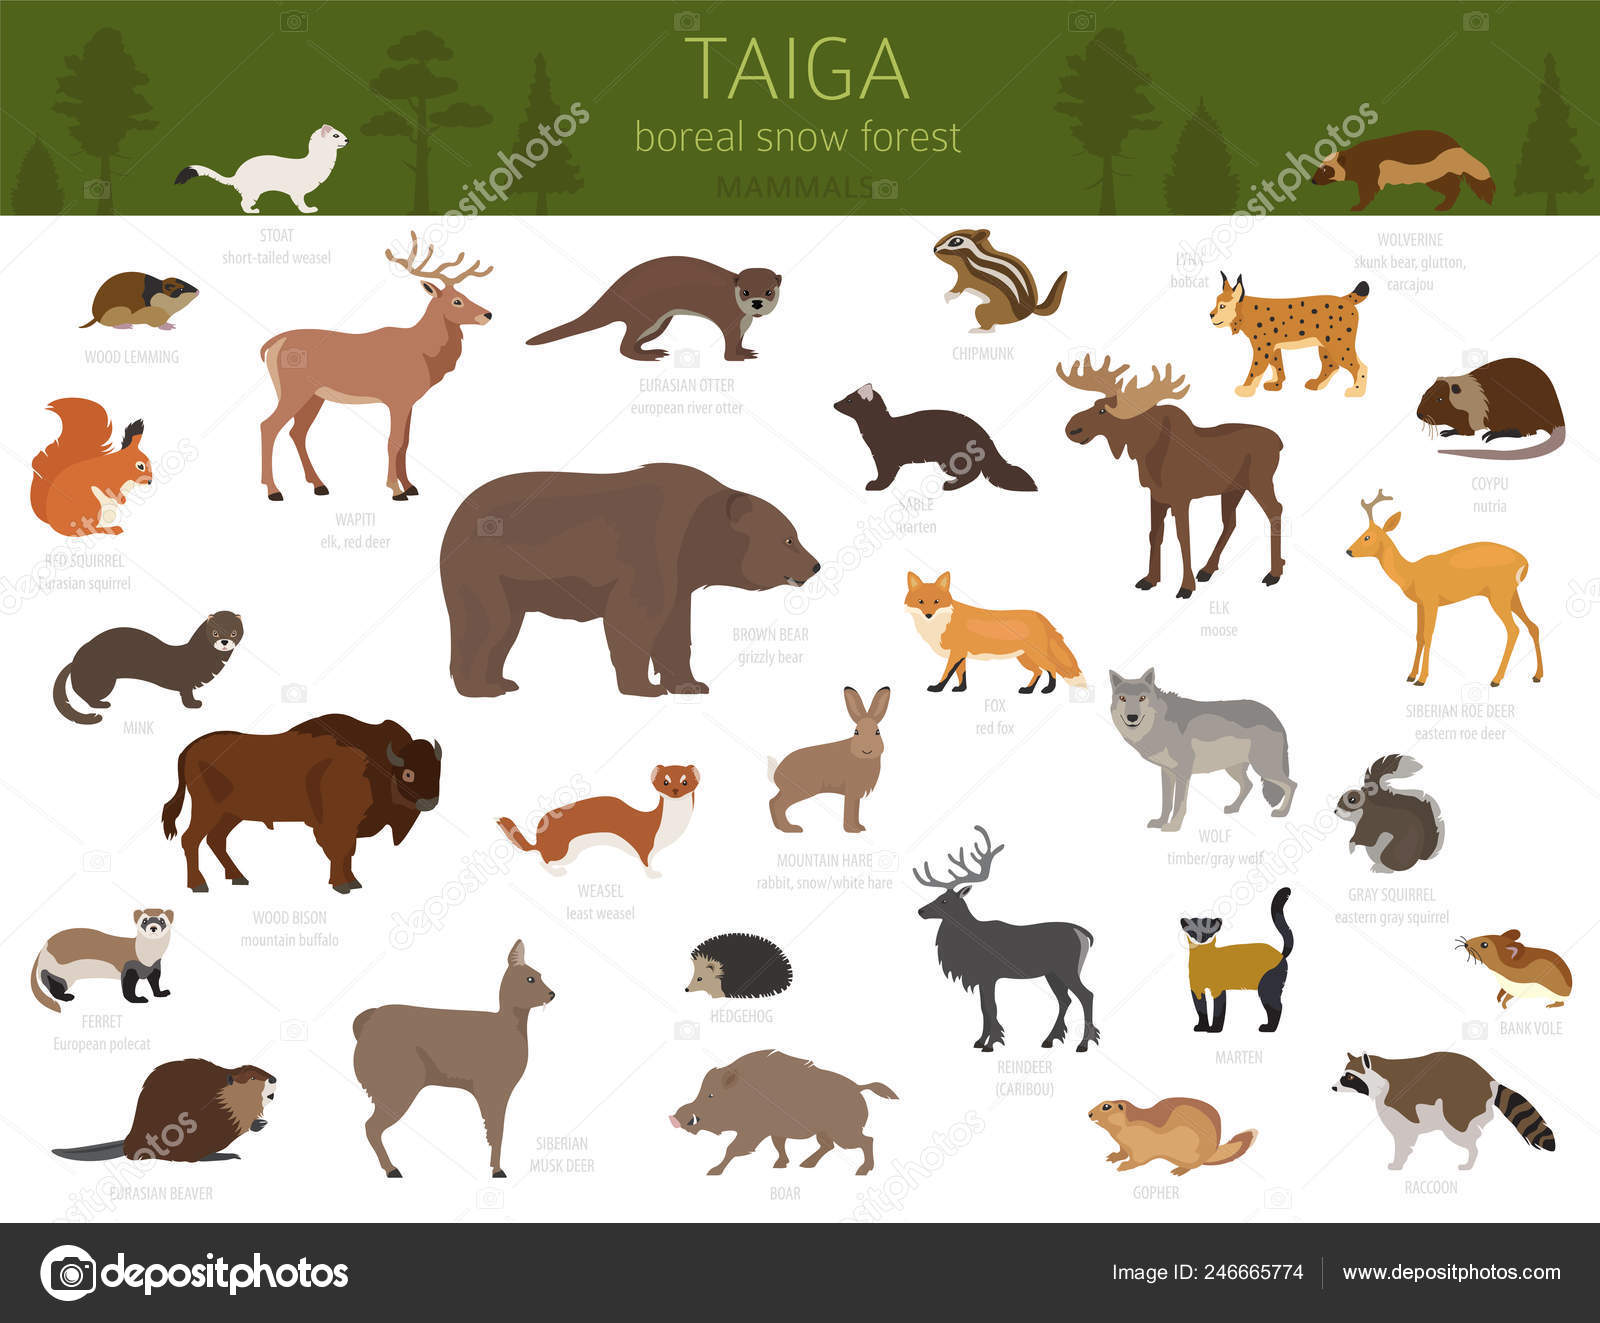 Plant life in the taiga: Taiga Biome Boreal Snow Forest Terrestrial Ecosystem World Map Animals Stock Vector Image By C A7880s 246665774